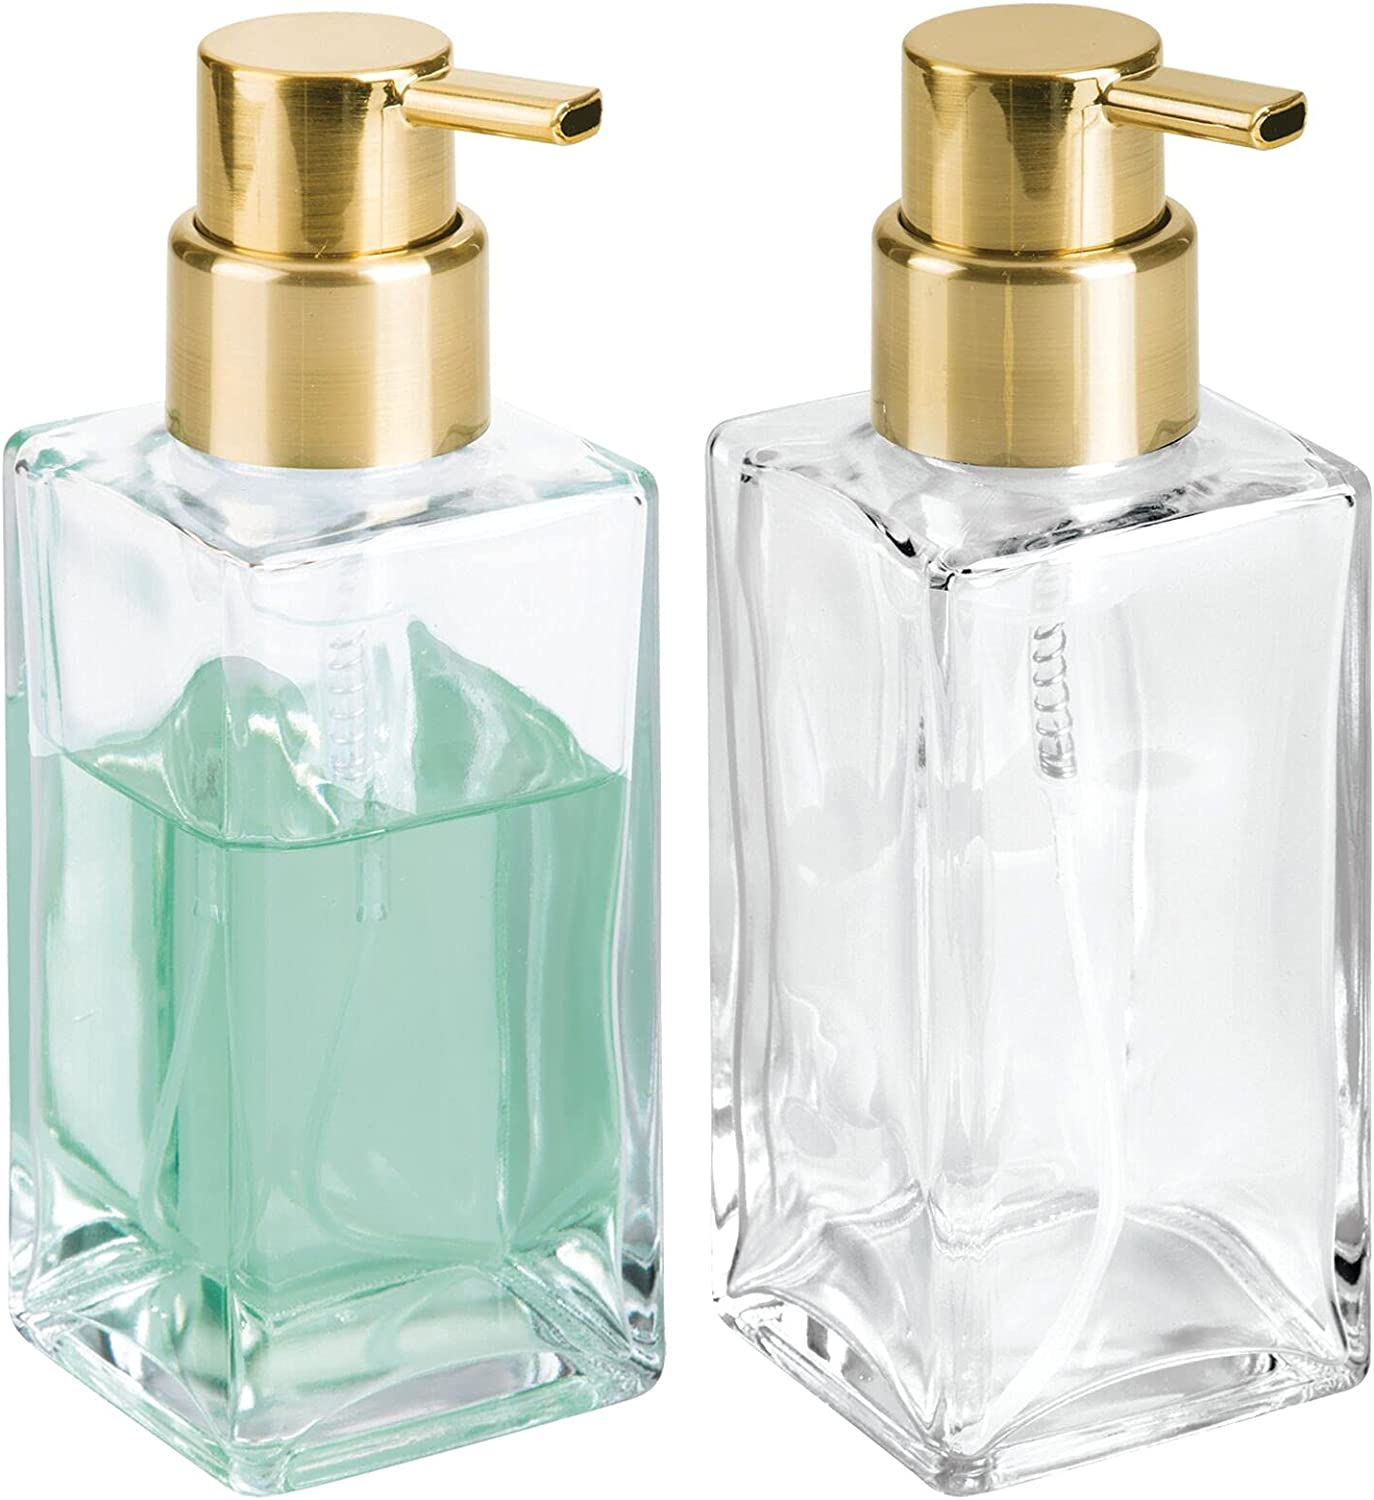 mDesign Modern Square Glass Refillable Foaming Hand Max 50% OFF Soap Dispens Factory outlet